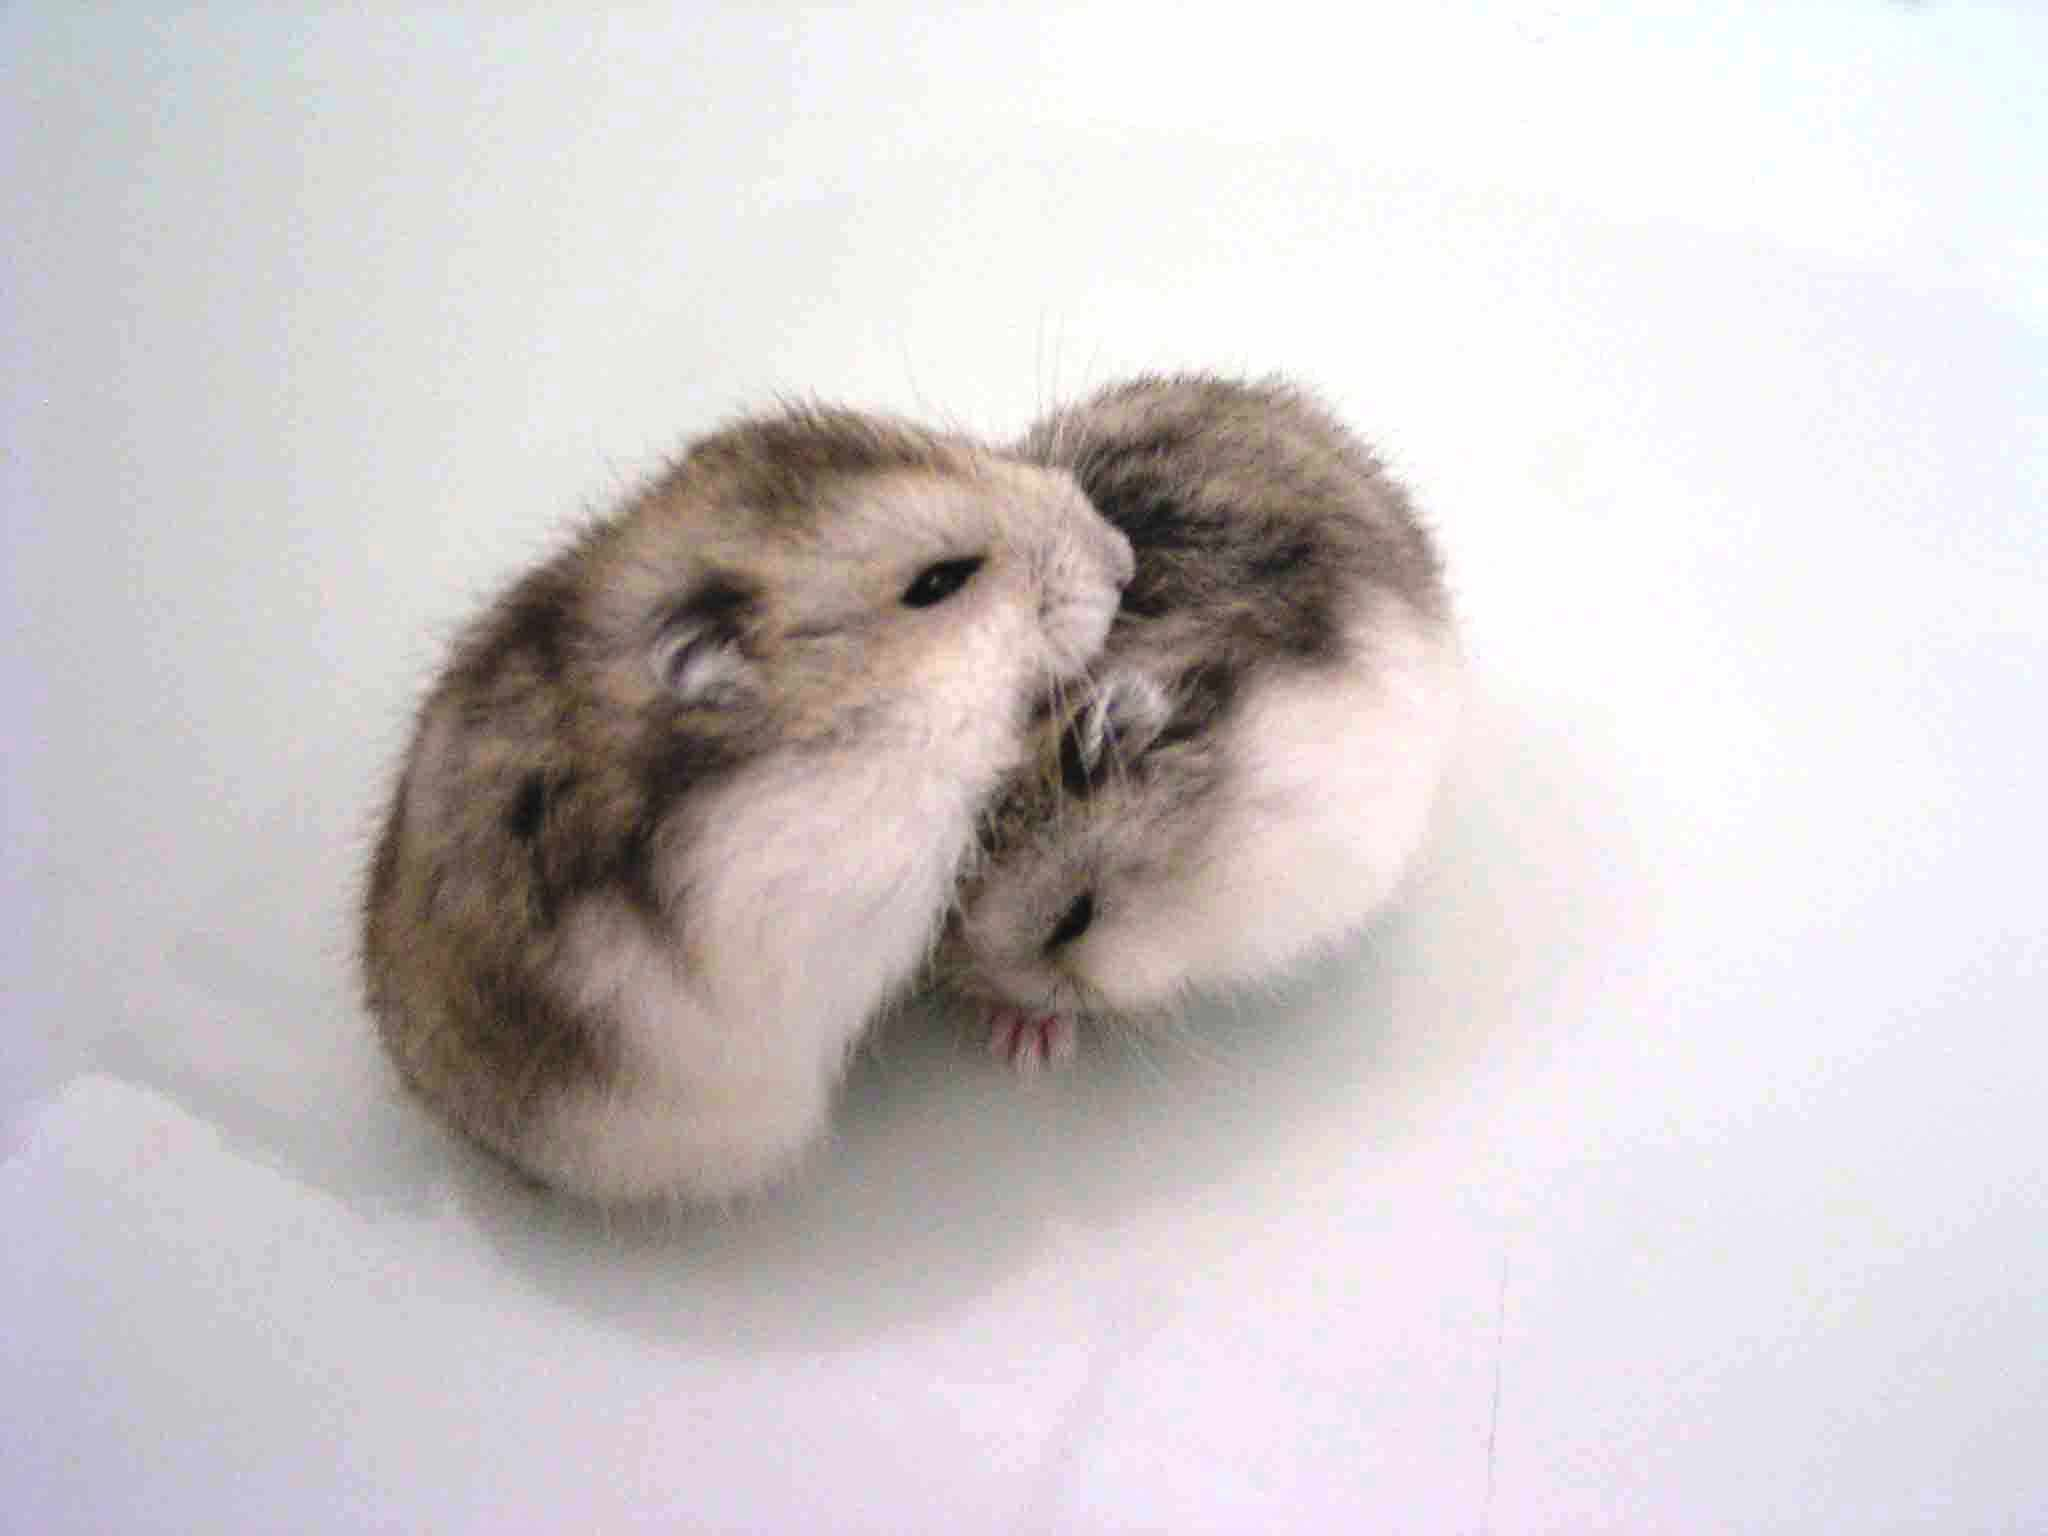 I Think This Is Two Campbell Hamsters Such Adorable Cuddling 3 Cute Hamsters Cute Funny Animals Cute Baby Animals